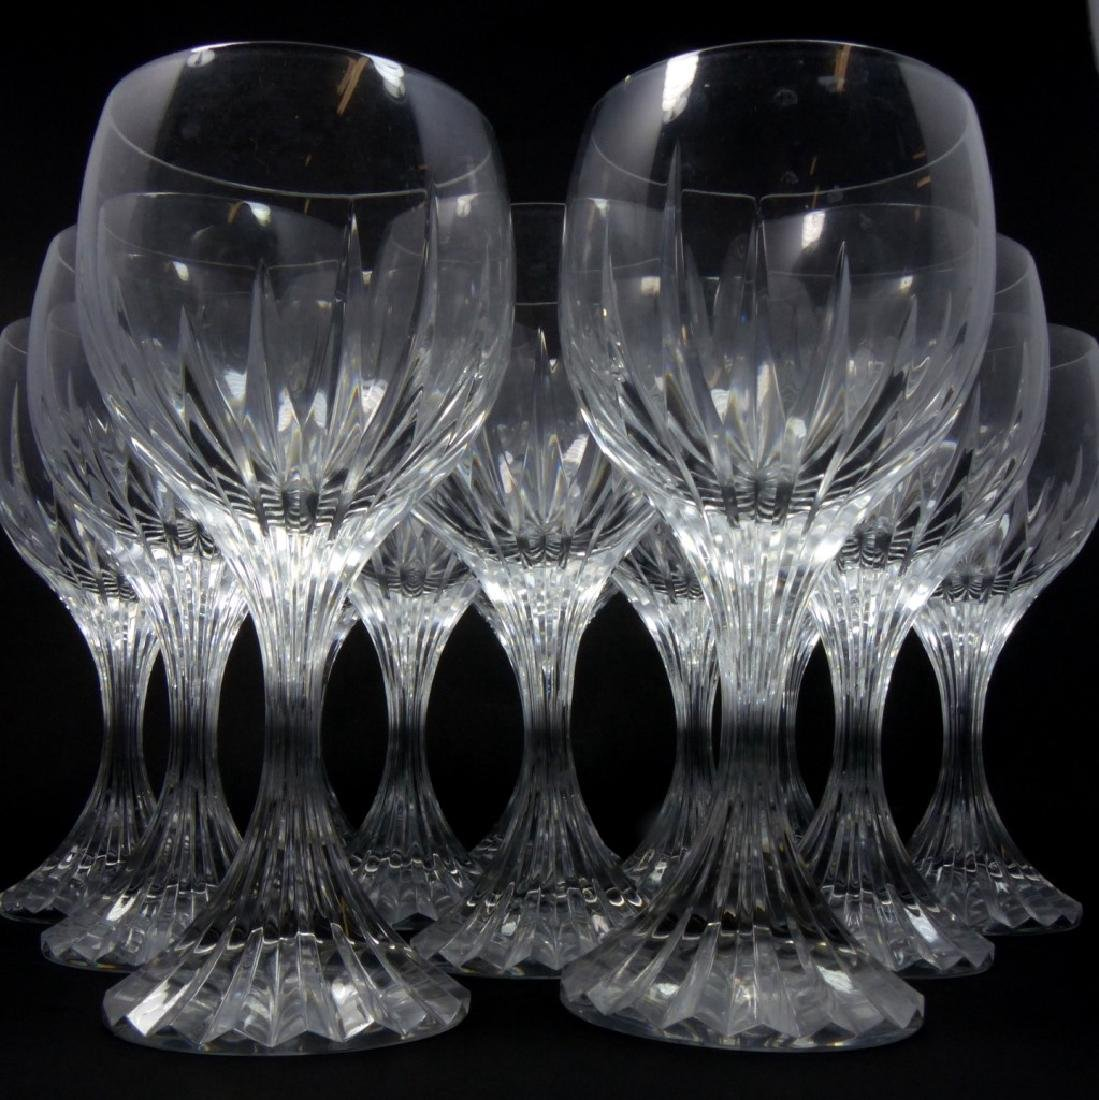 12pc BACCARAT MESSENA CRYSTAL WATER GOBLETS - 3